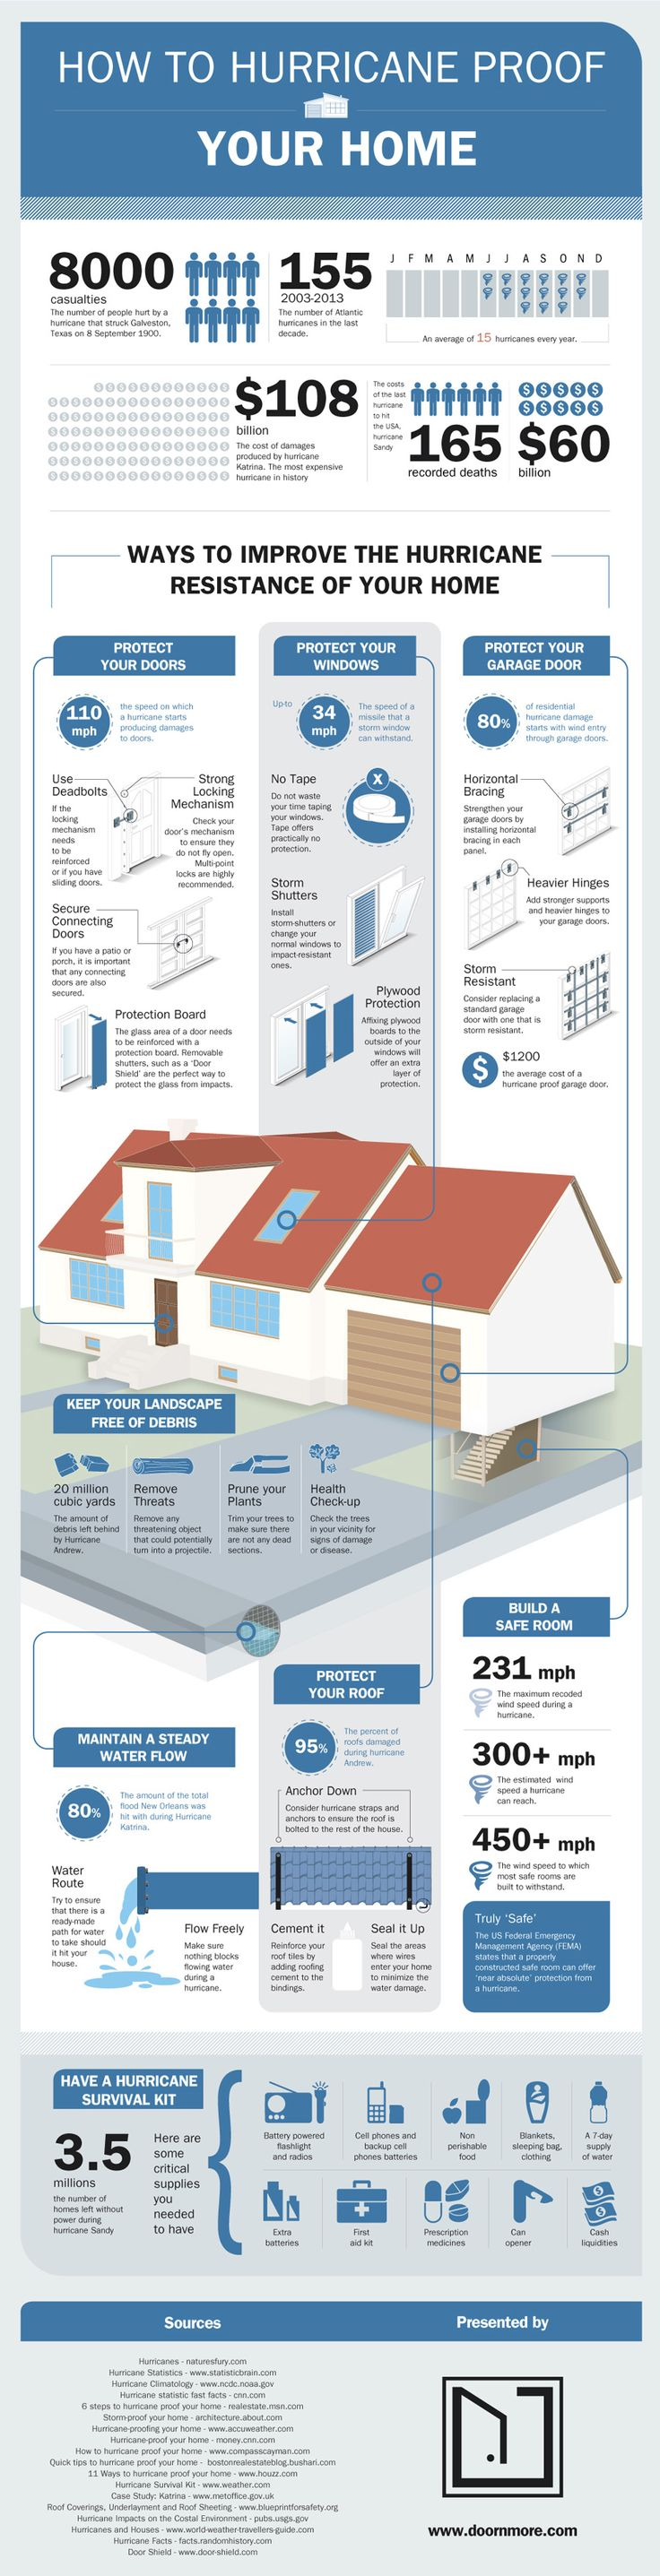 How to hurricane-proof your house #infographic #hurricane